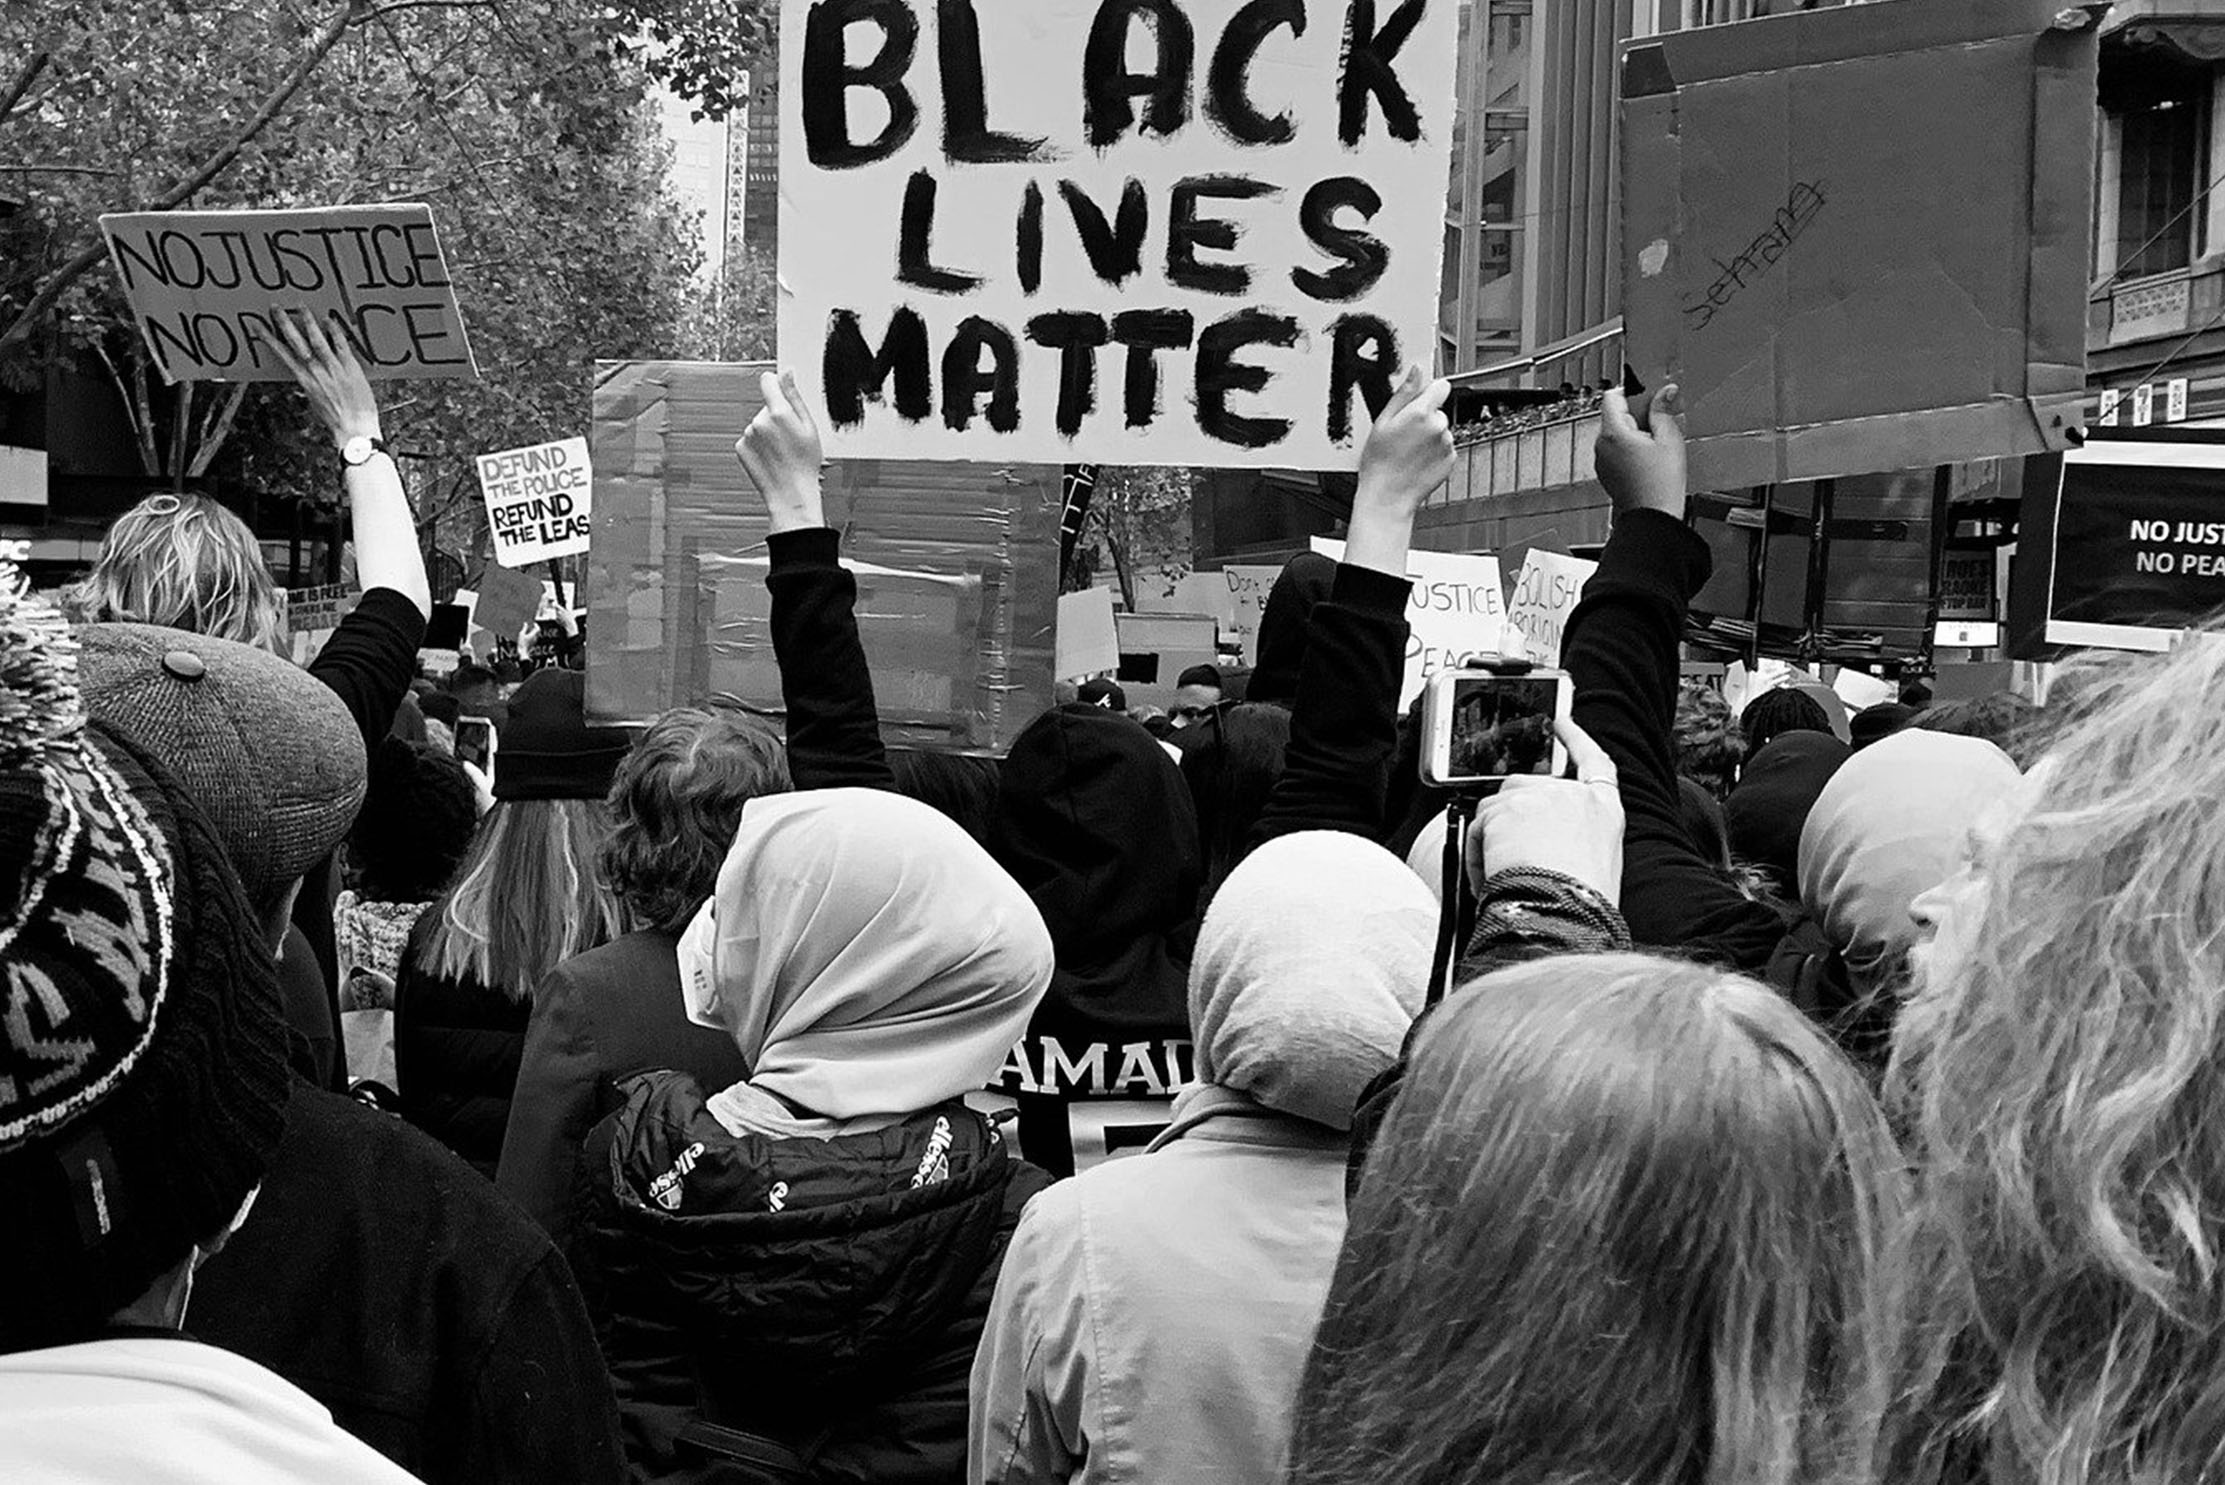 Raoul Walawalker from the Immigration Advice Service examines the ongoing issue of systemic racism in the UK's criminal justice system